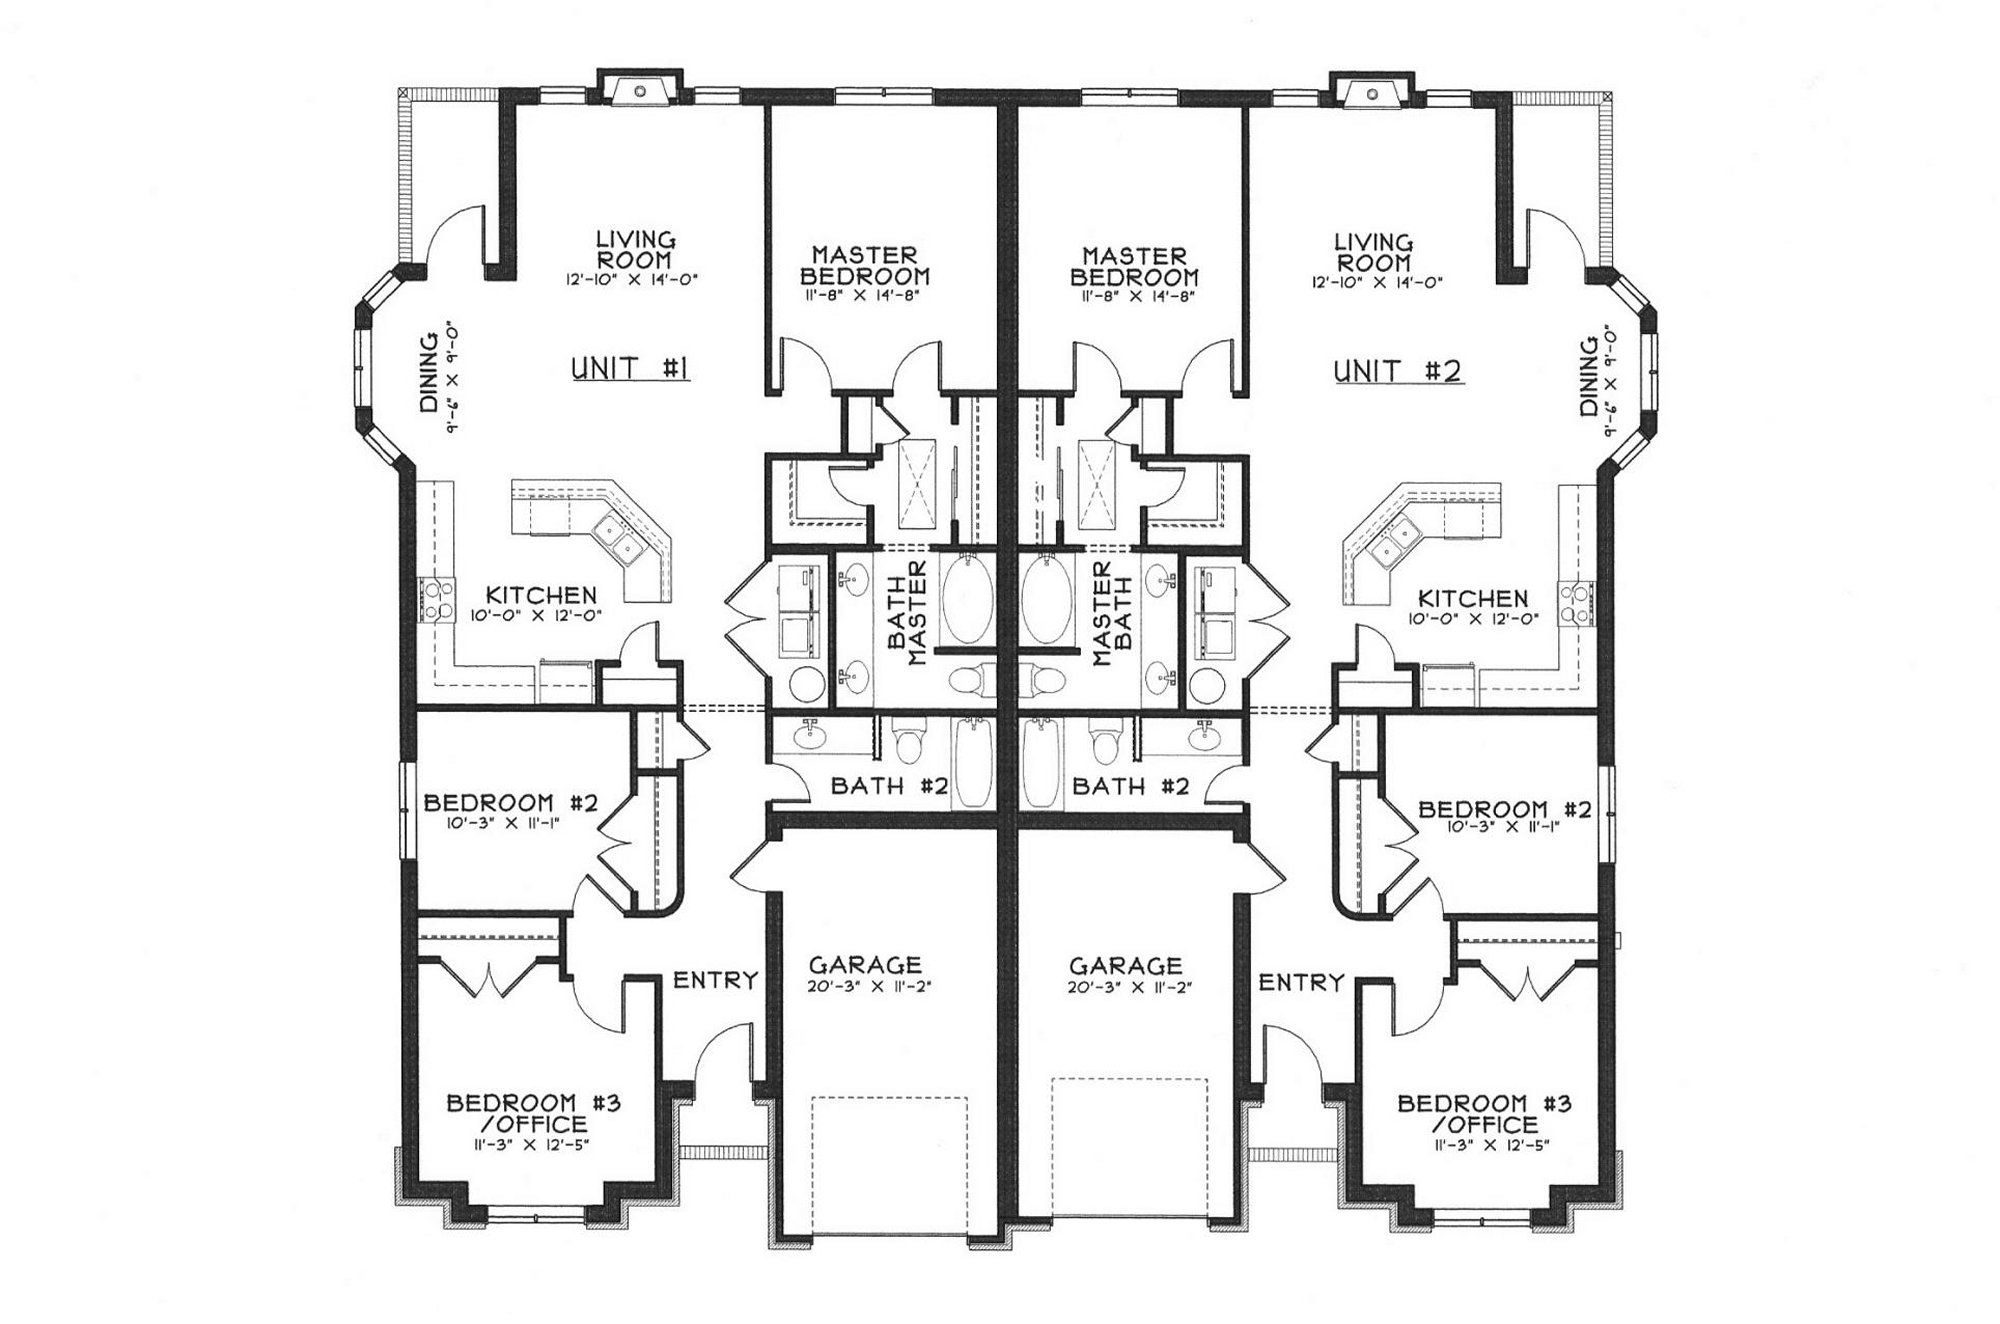 Apartment Building Floor Plans Designs duplex house plans free download modern designs floor ~ cubtab